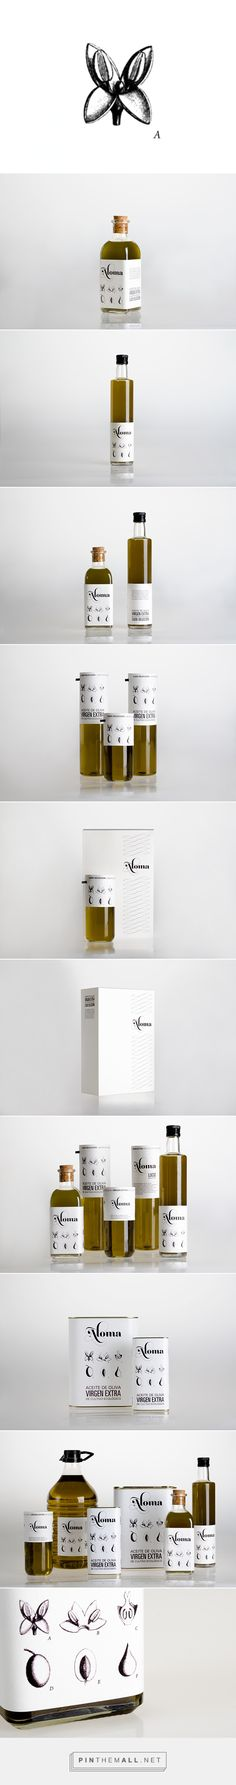 Aloma organic olive oil by Zhamora on Behance curated by Packaging Diva PD. Love this pretty illustrated olive oil packaging.